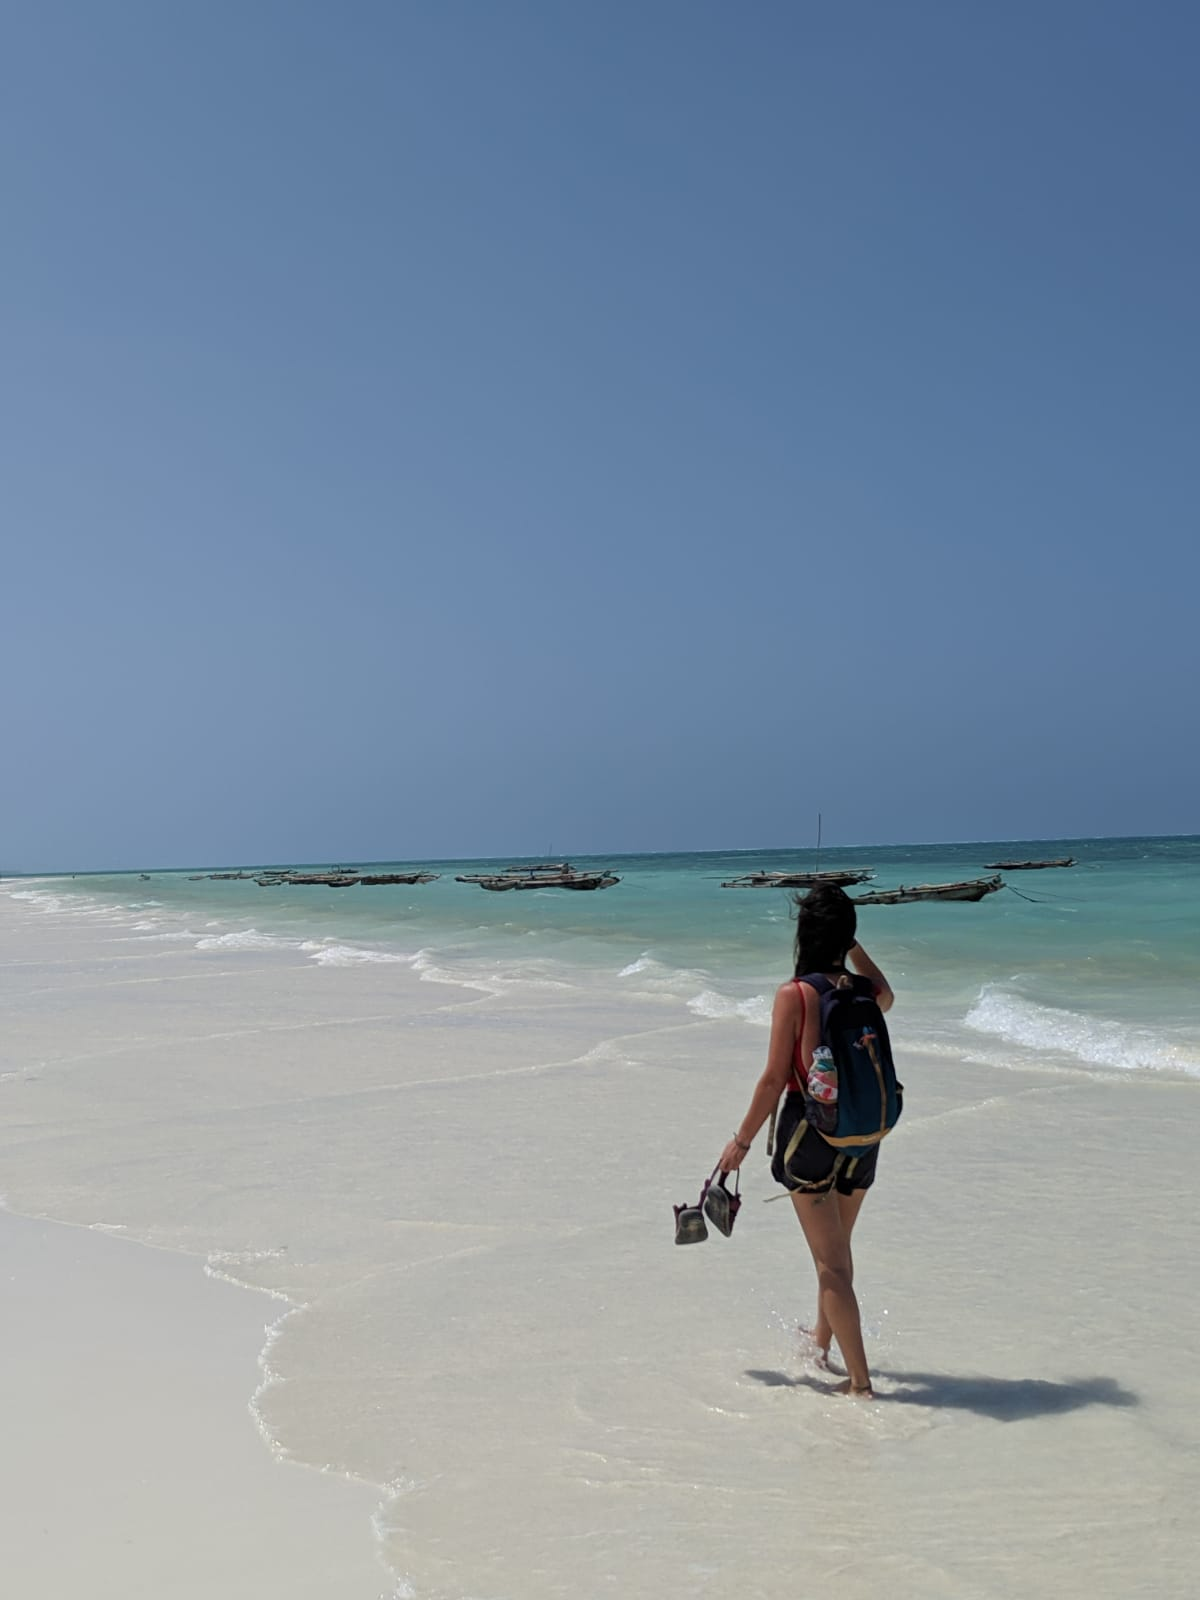 Walking on the white sand in Jambiani Beach, Zanzibar, Tanzania